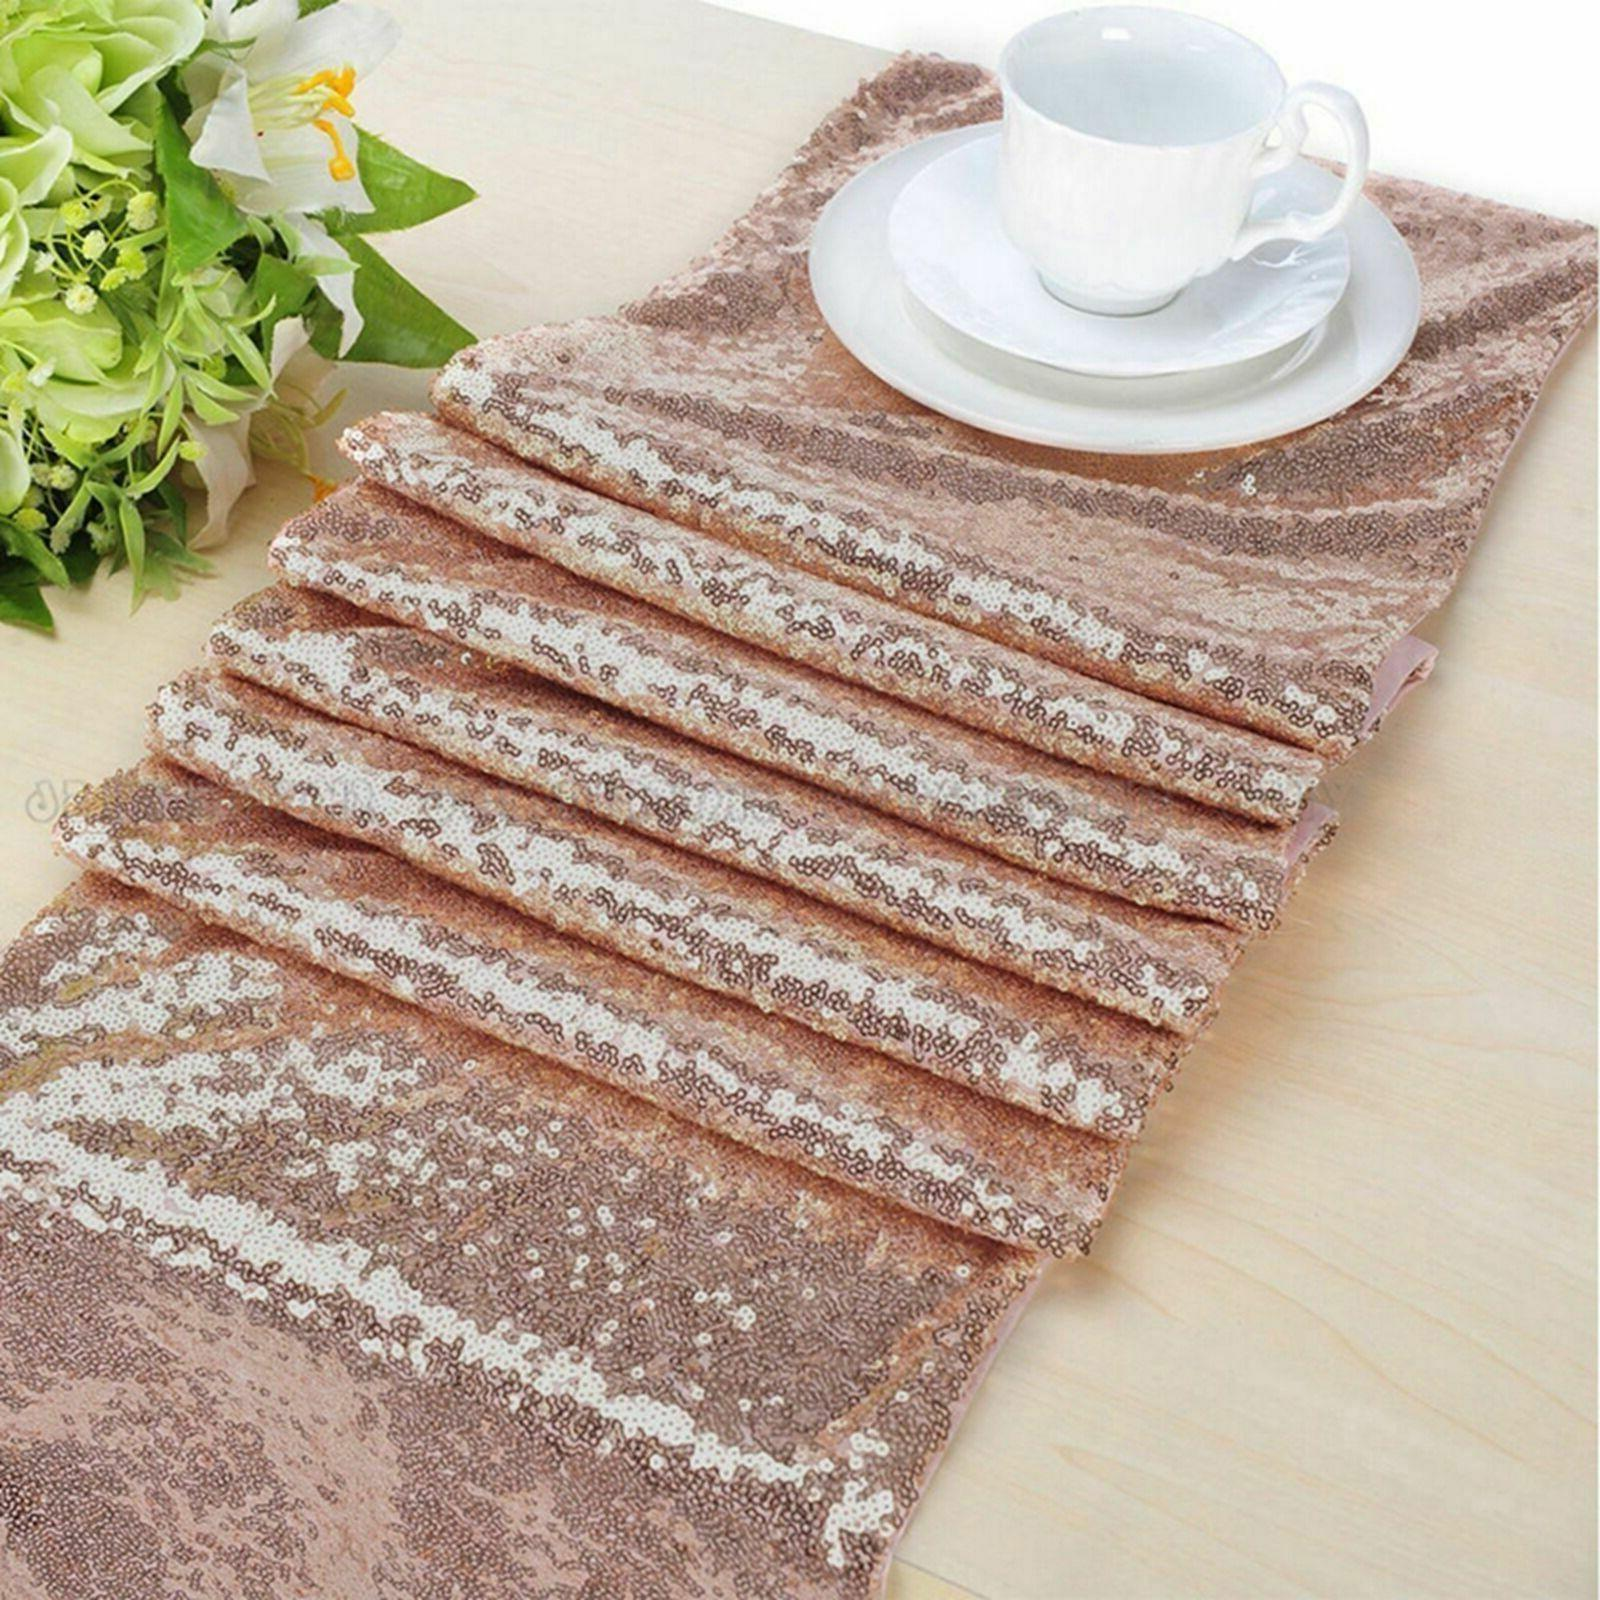 rose gold sequin table runner tablecloth xmas